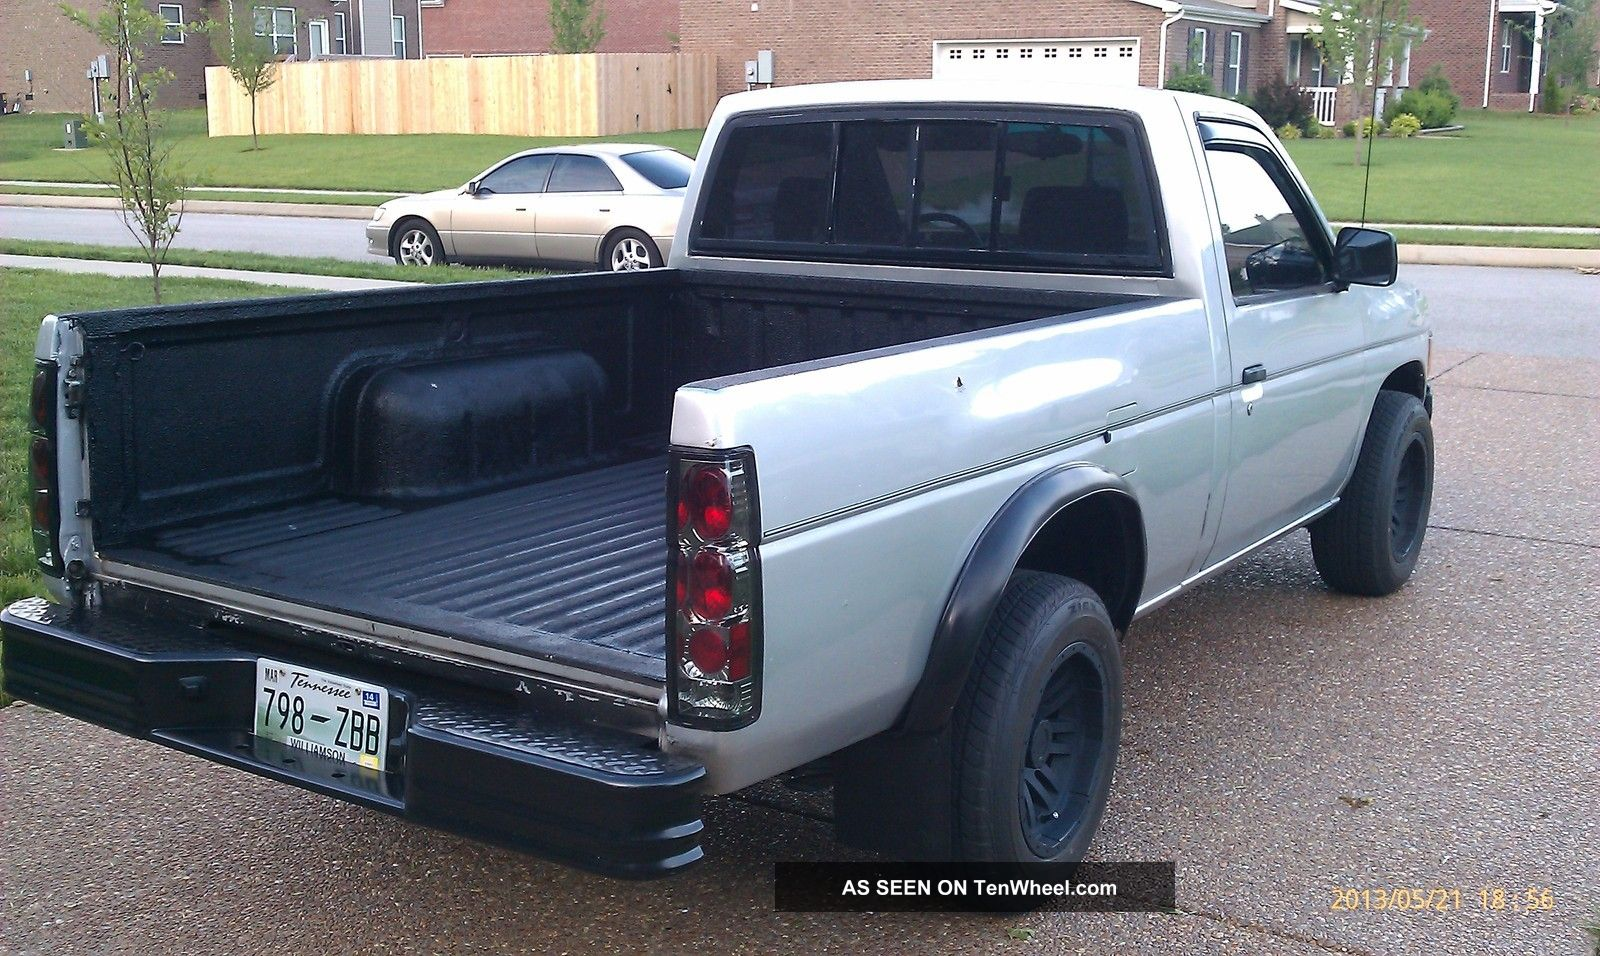 hight resolution of 1988 nissan d21 base hardbody pickup 2 door 2 4l 5spd cold a c driven daily